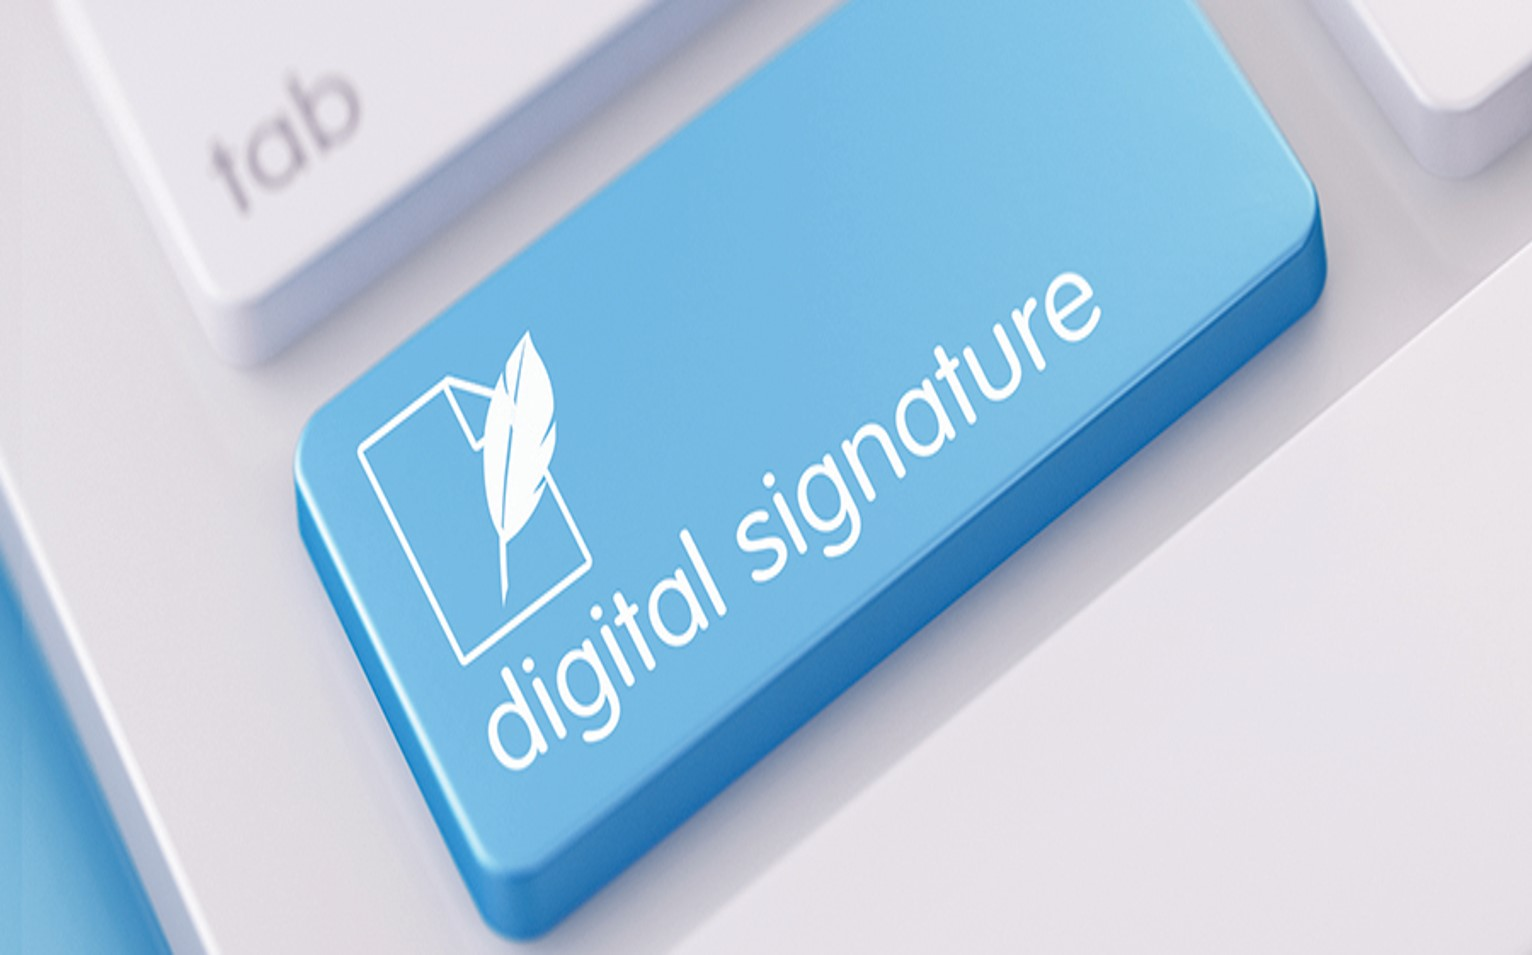 Top Digital signature services